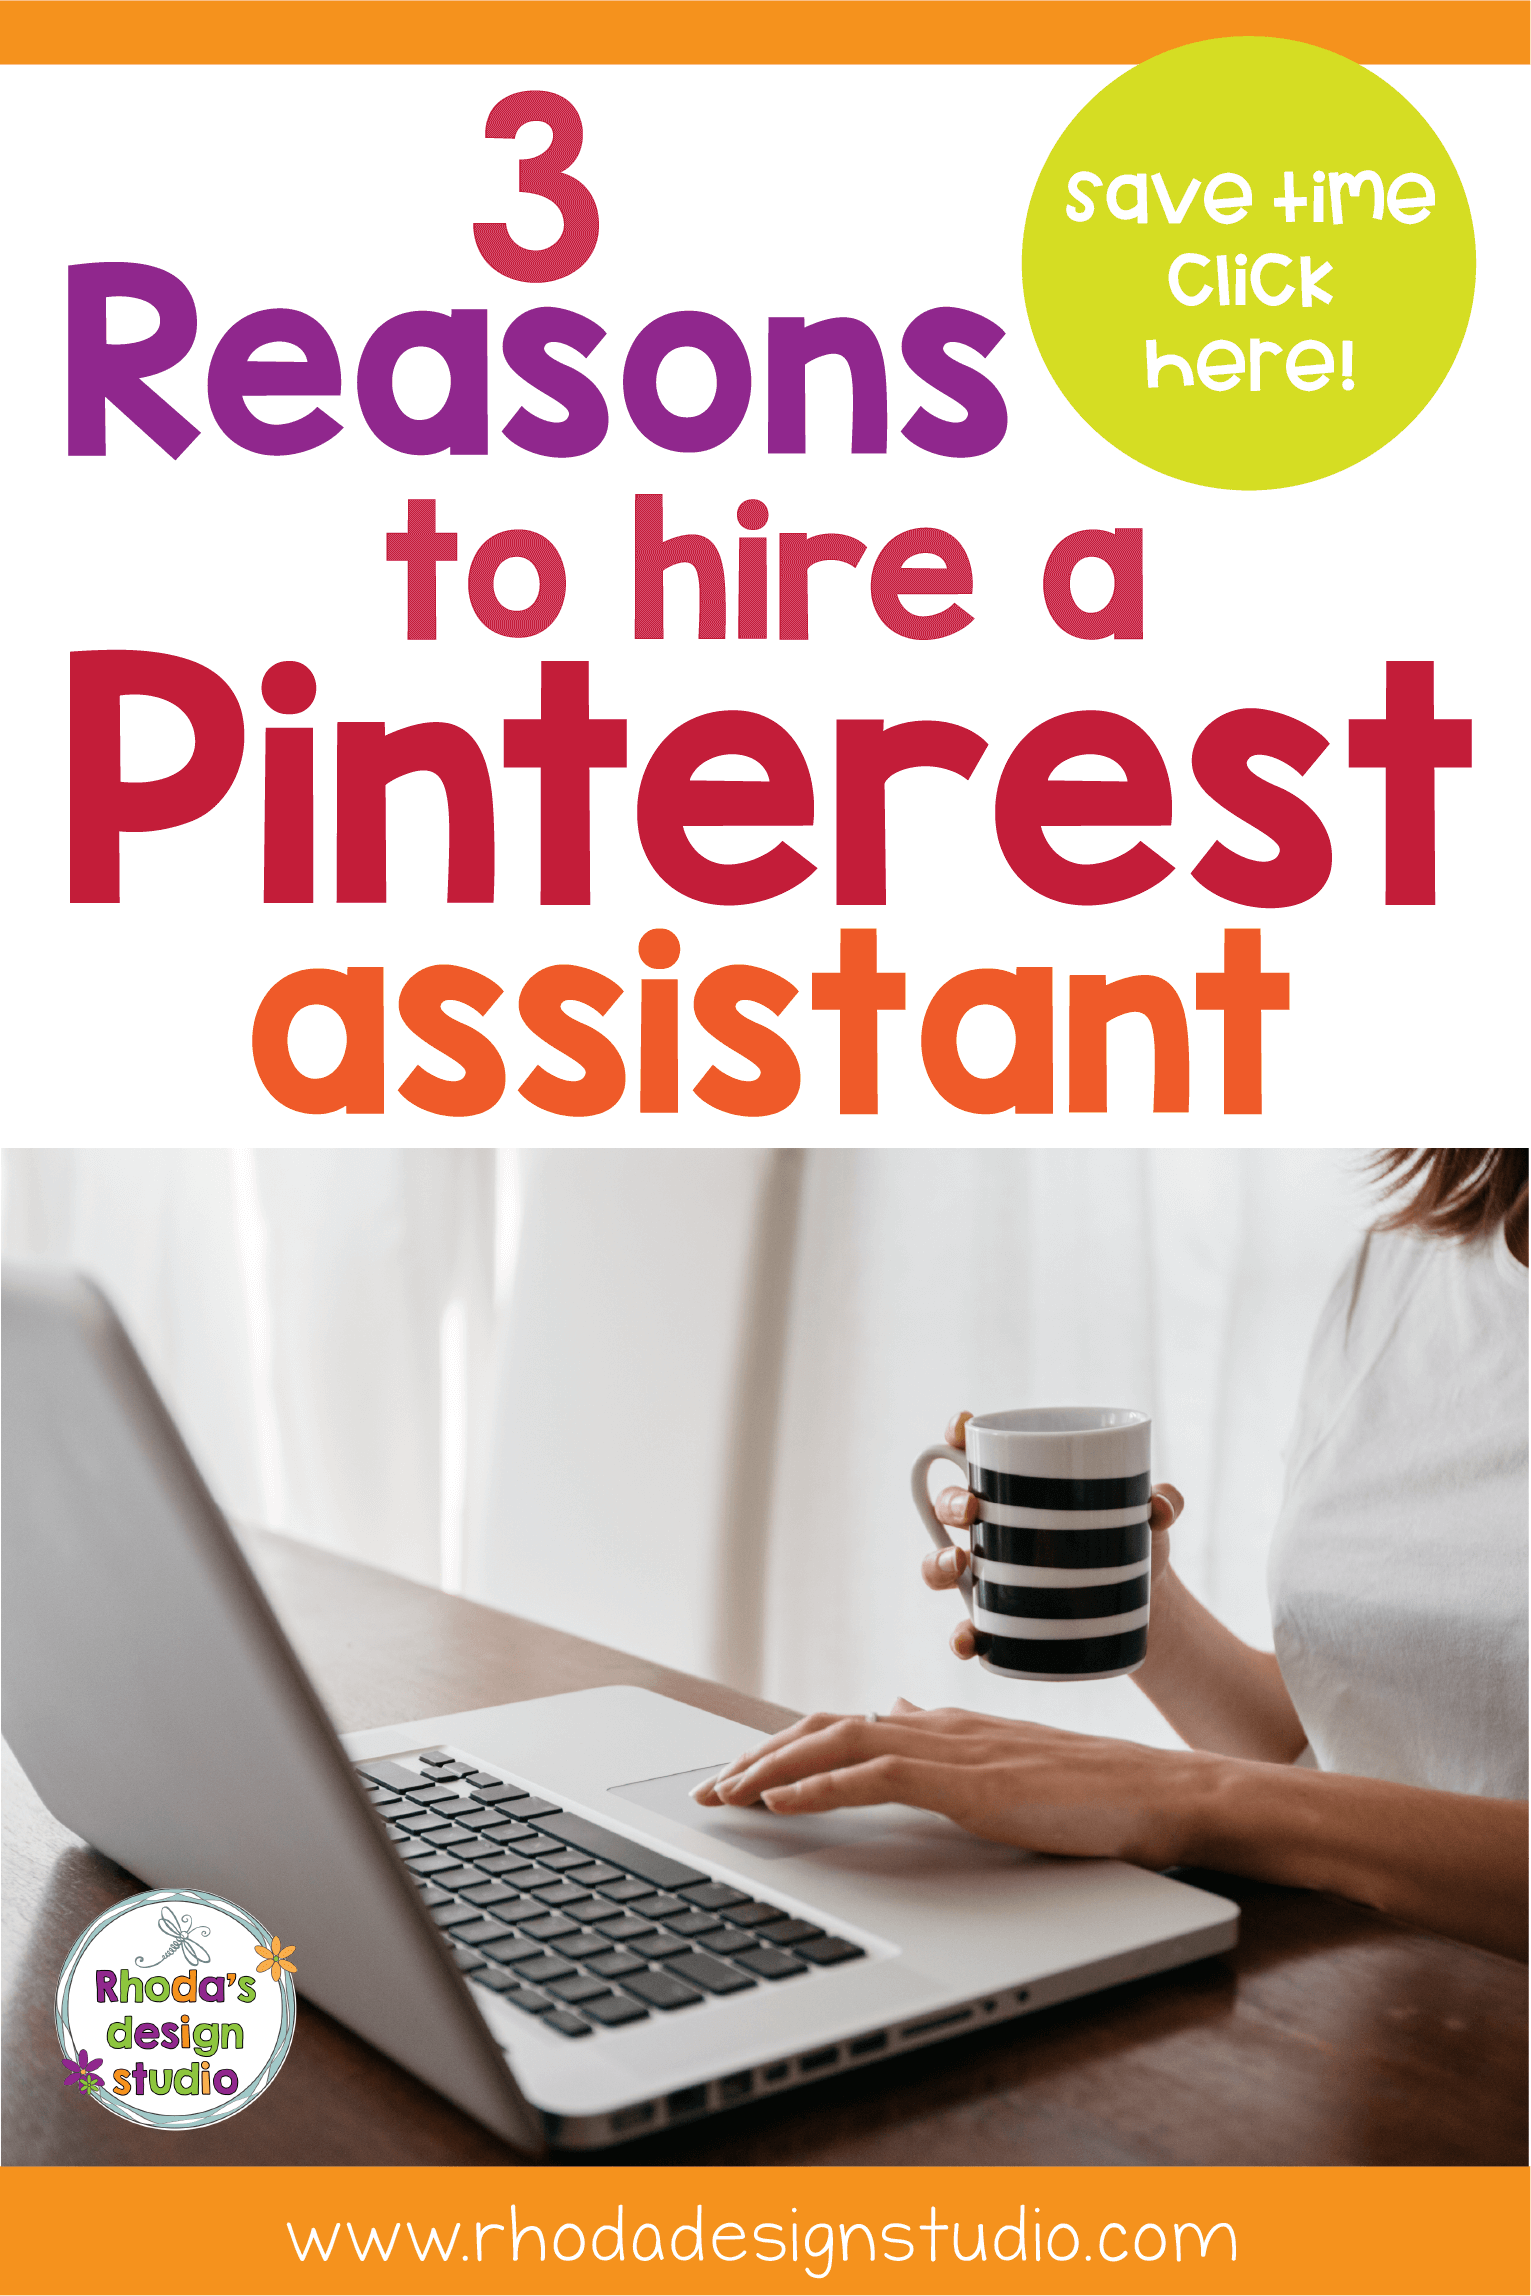 Hiring a Pinterest Virtual Assistant will help your business grow by increasing traffic. These top 3 reasons to hire a Pinterest Virtual Assistant will help you decide if a virtual assistant is right for you. Click the image to read more!